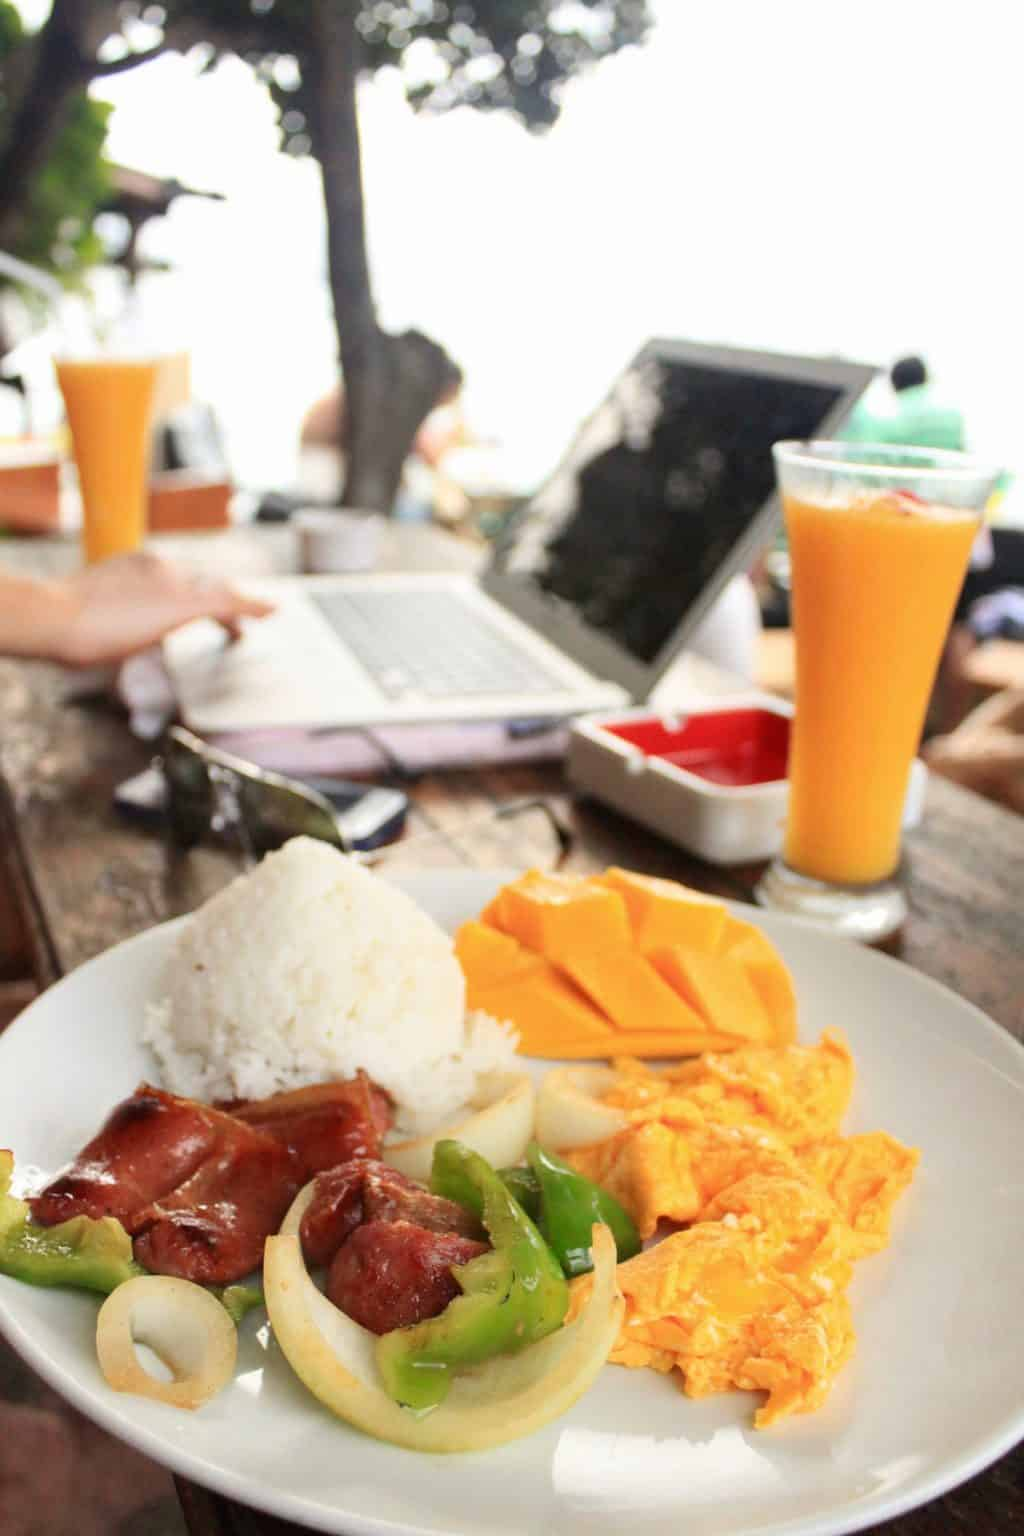 Typical Filipino breakfast in Boracay